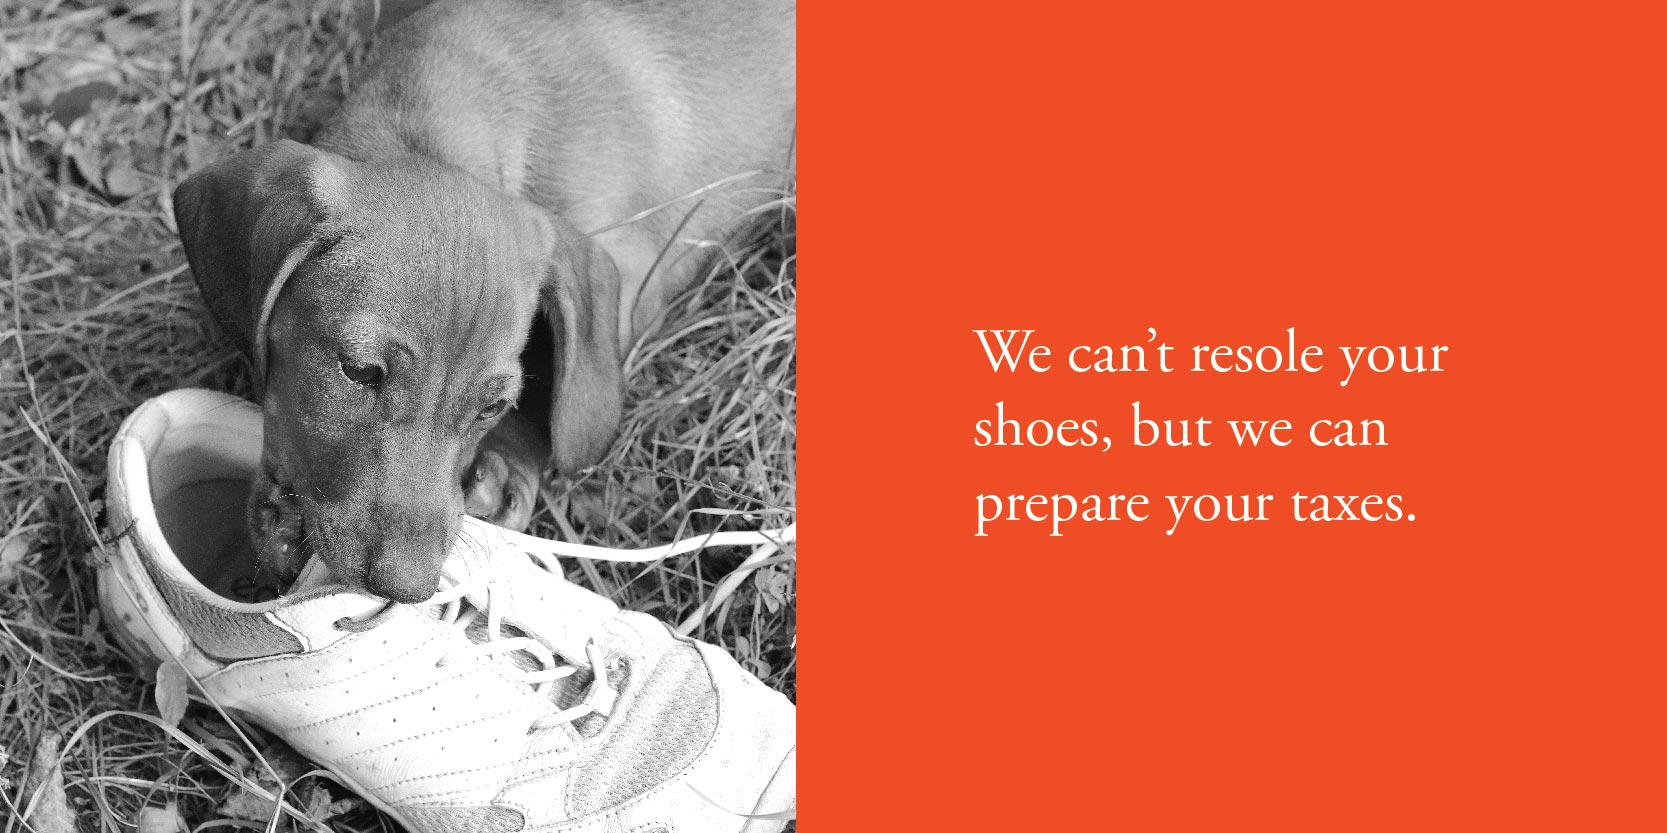 We can't resole your shoes, but we can prepare your taxes.